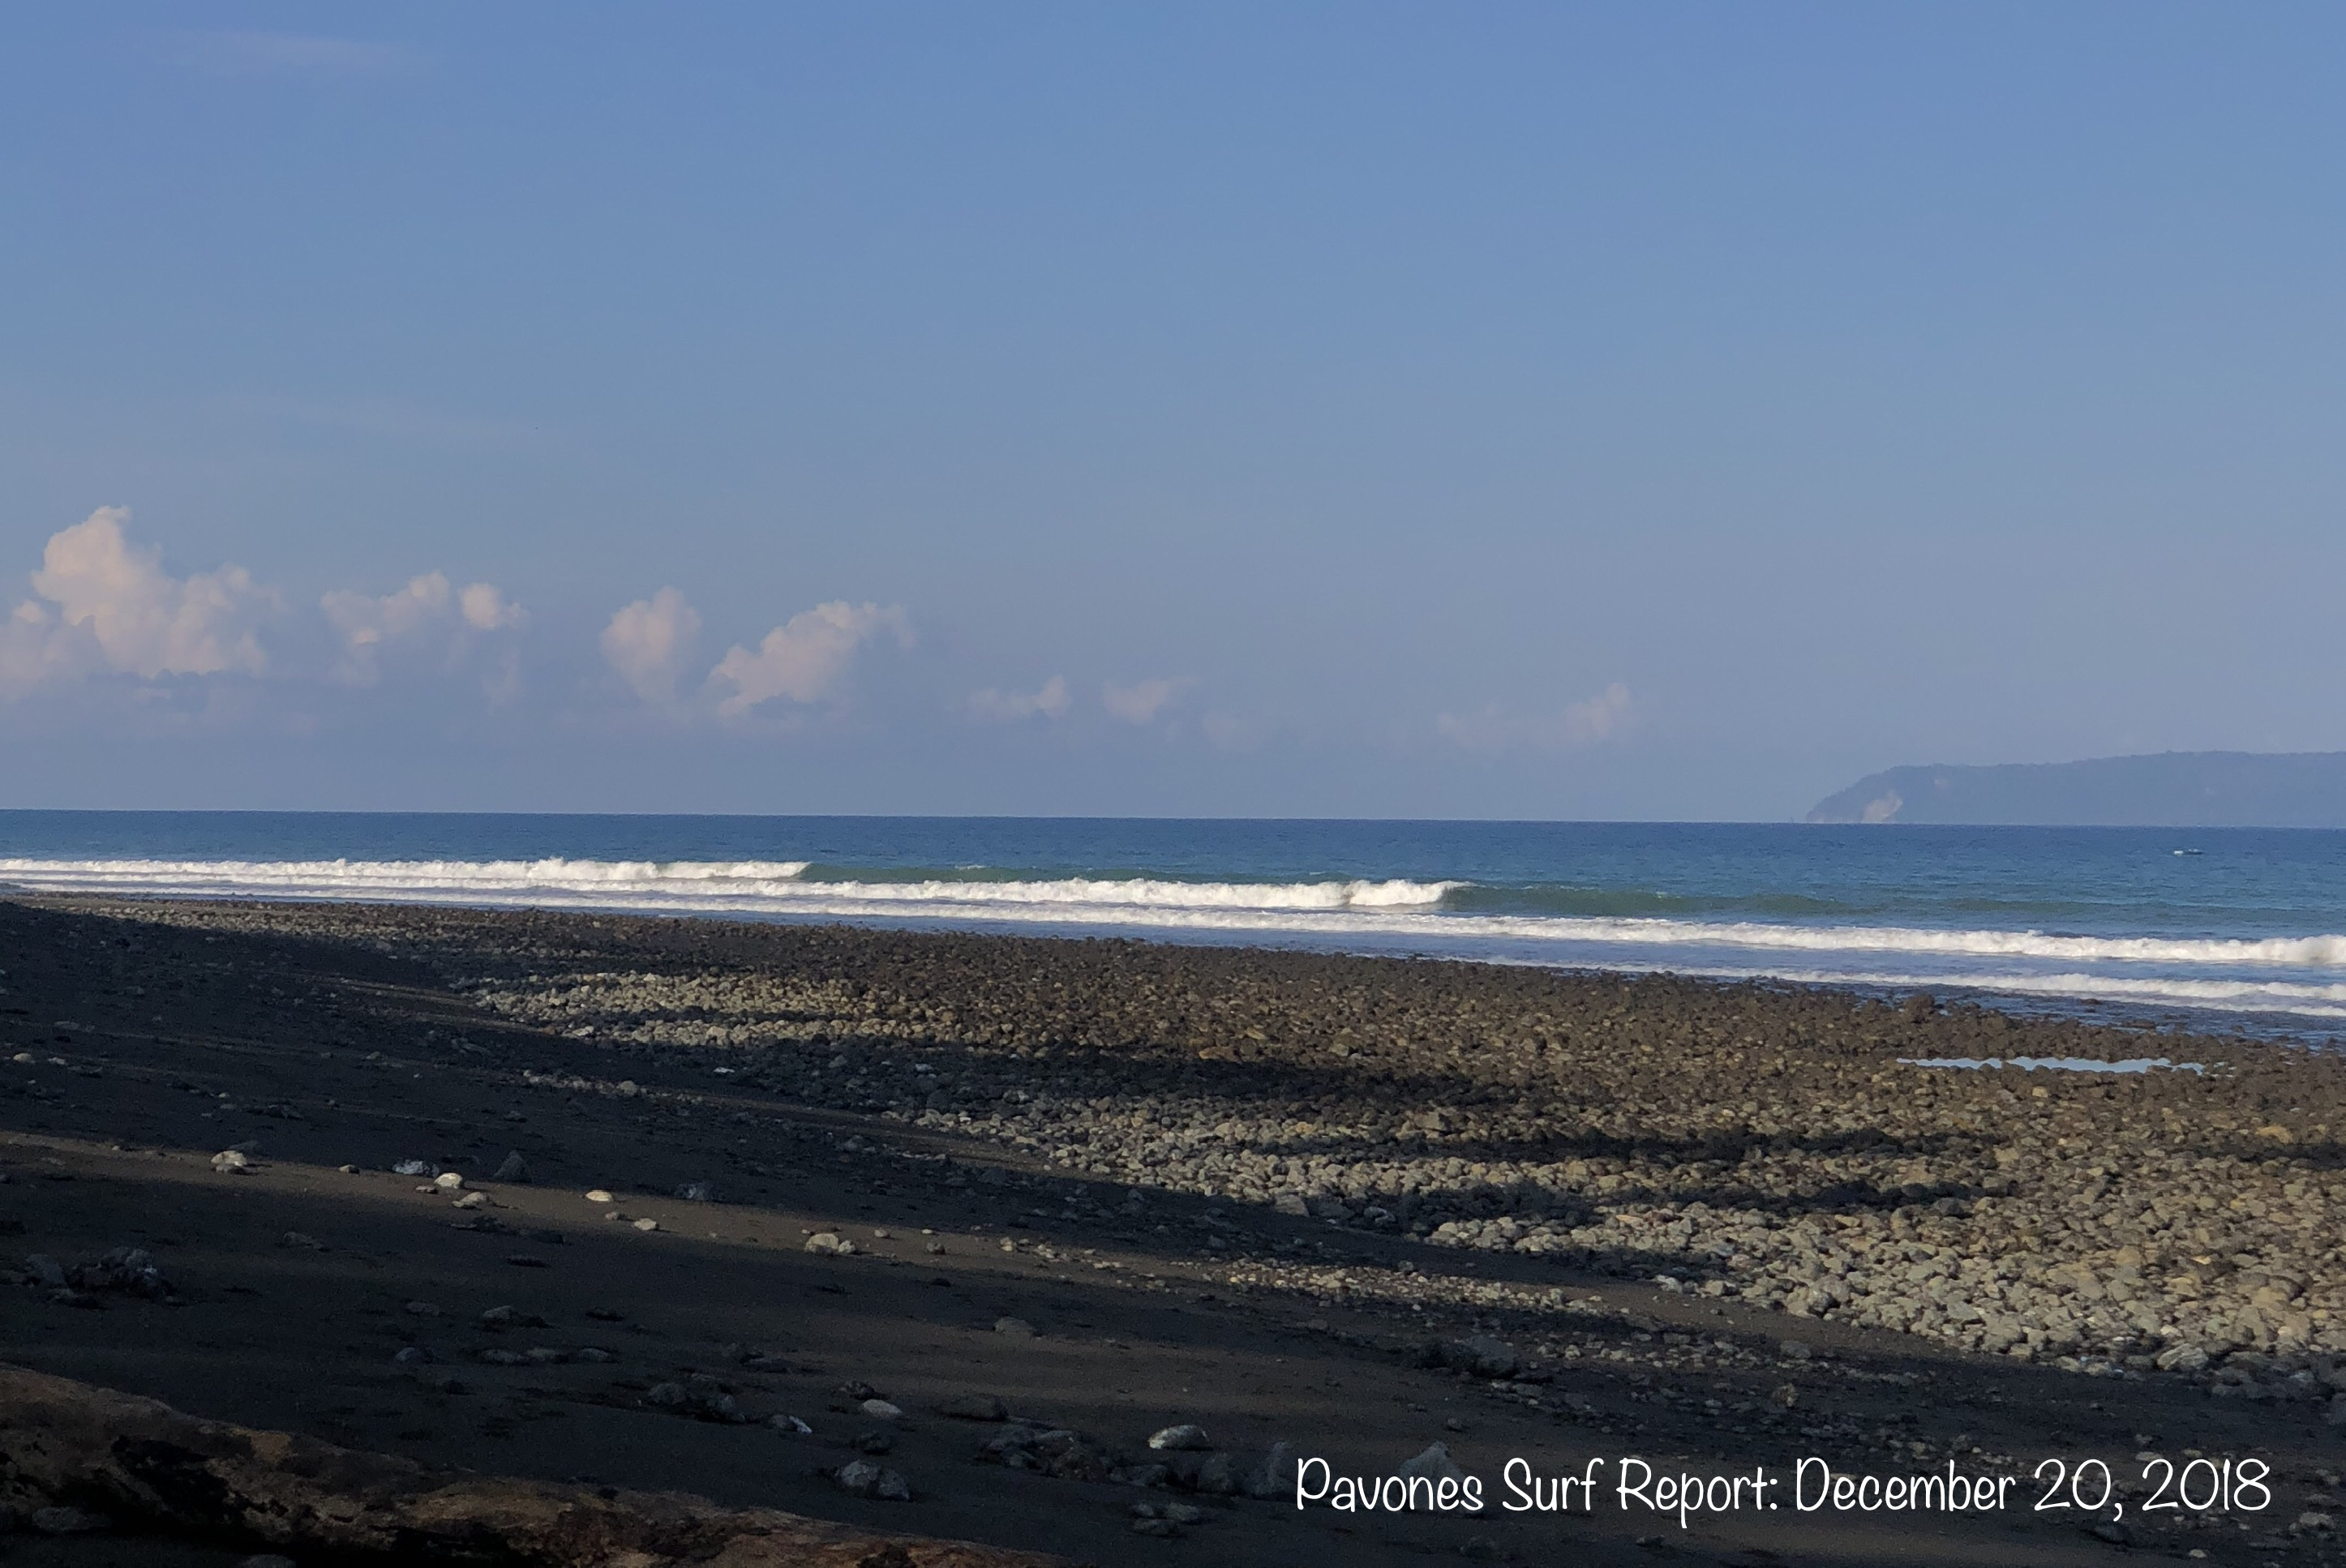 Pavones Surf Report